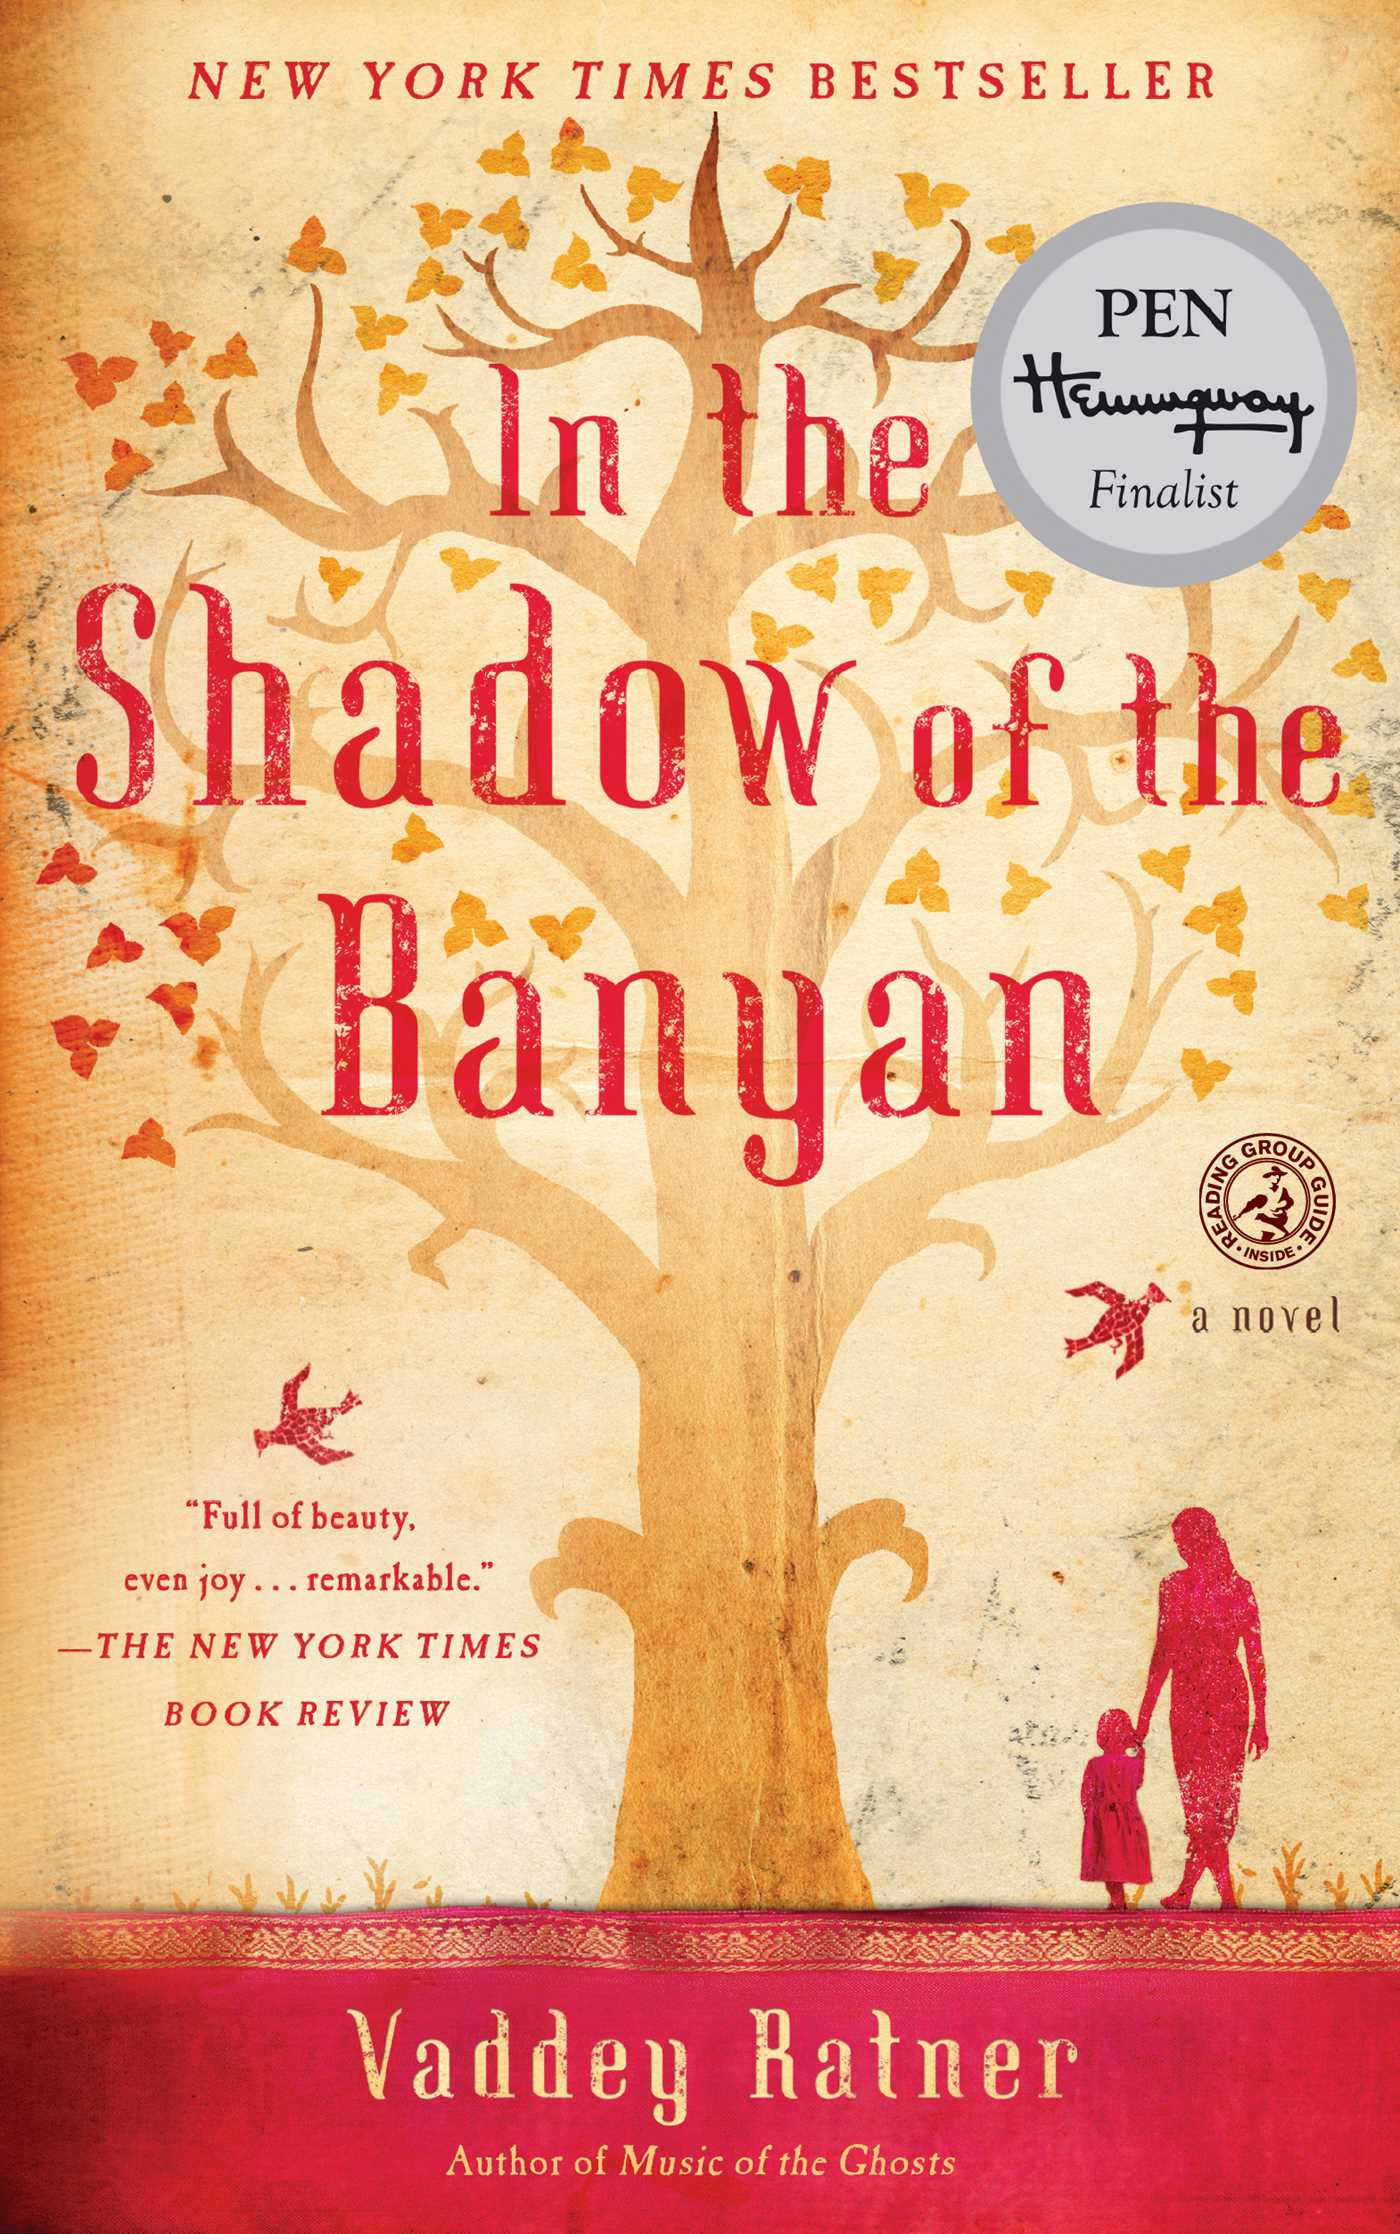 In the shadow of the banyan 9781451657722 hr